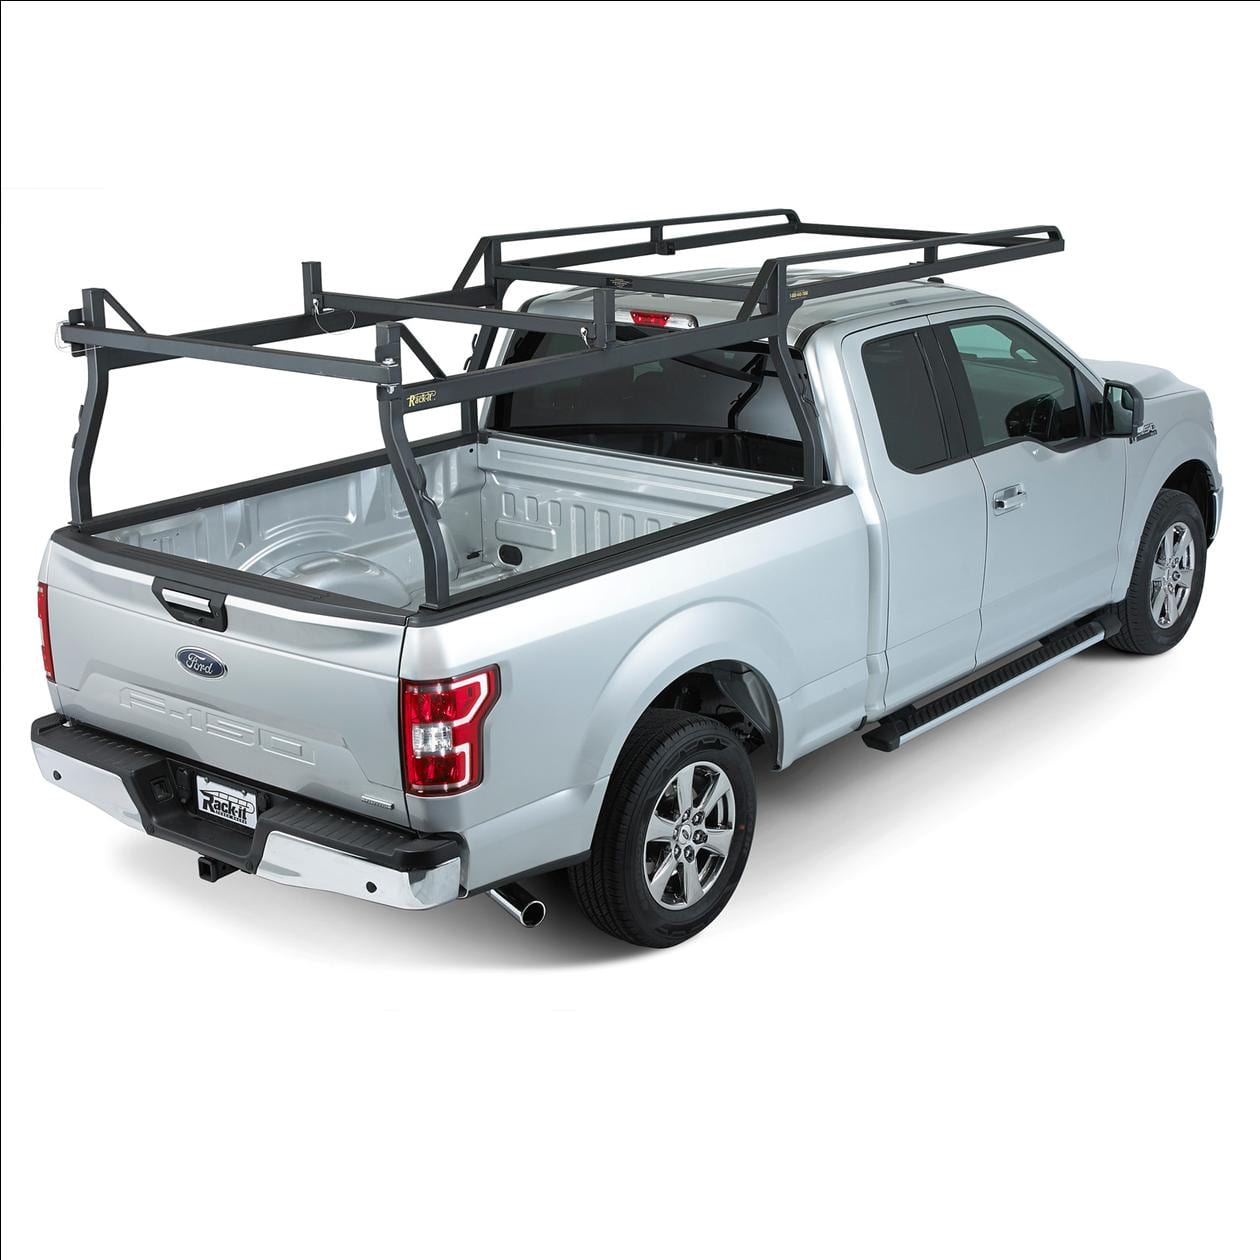 Ford F150 Rack >> Rack It Inc Hd Forklift Loadable Rack For Ford F150 Long Bed